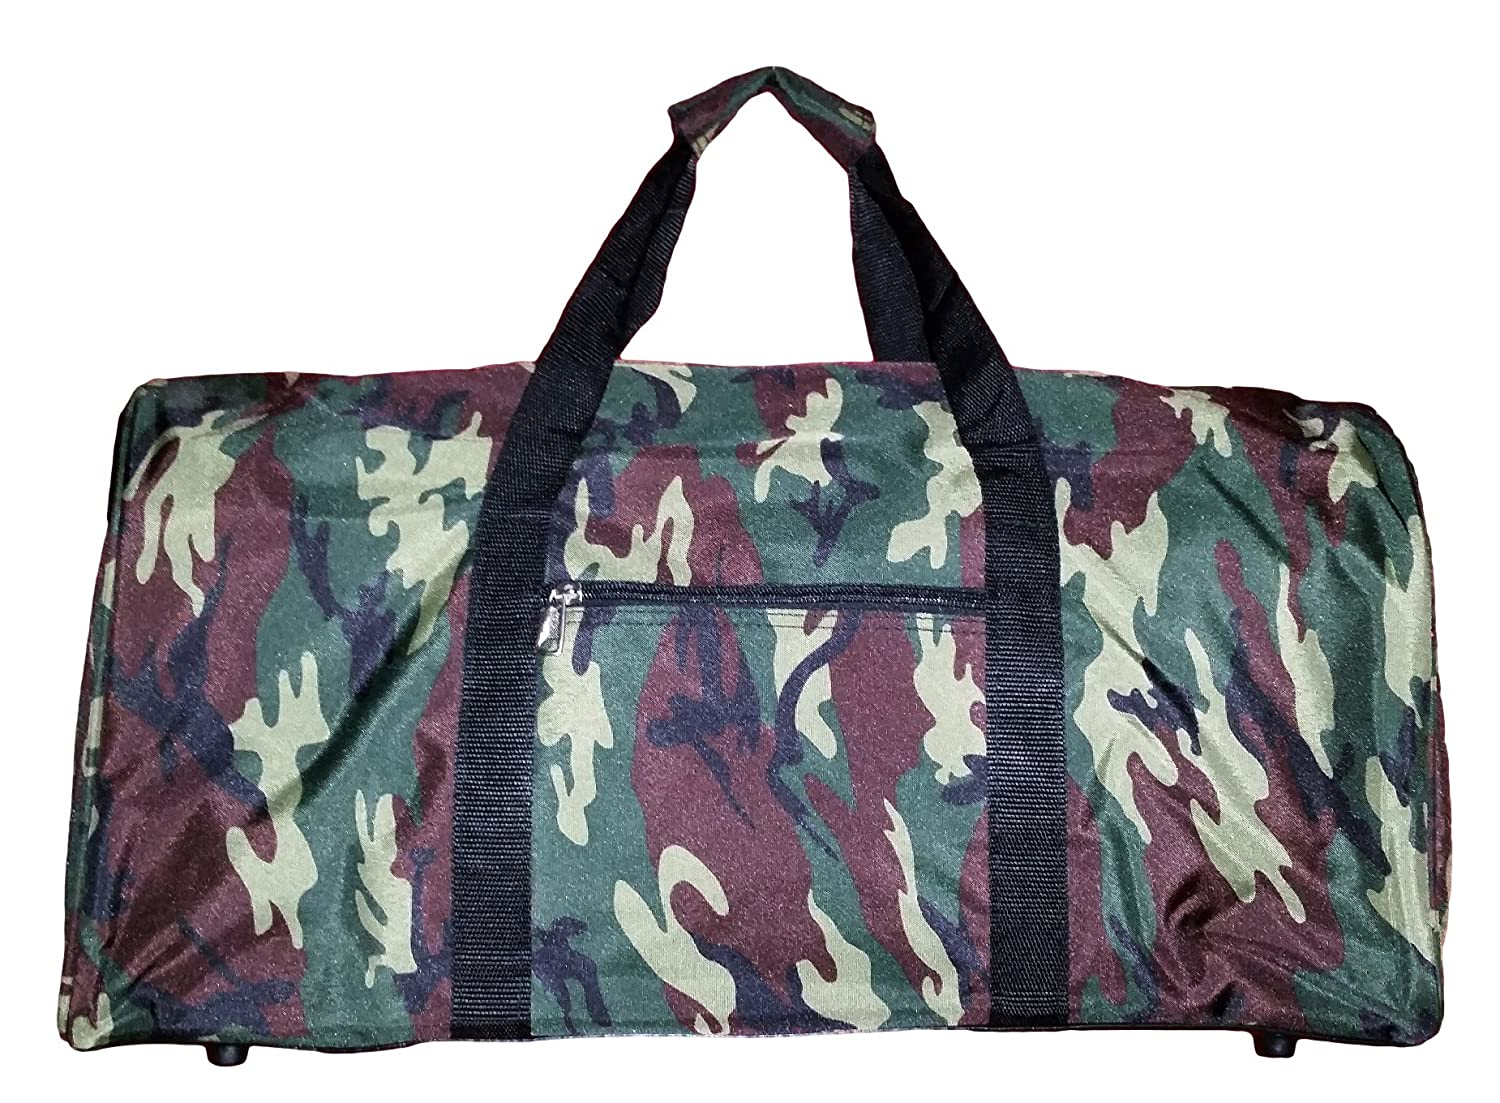 21 in Print Duffle, Overnight, Carry on Bag with Outside Pocket and Shoulder Strap Camoflauge